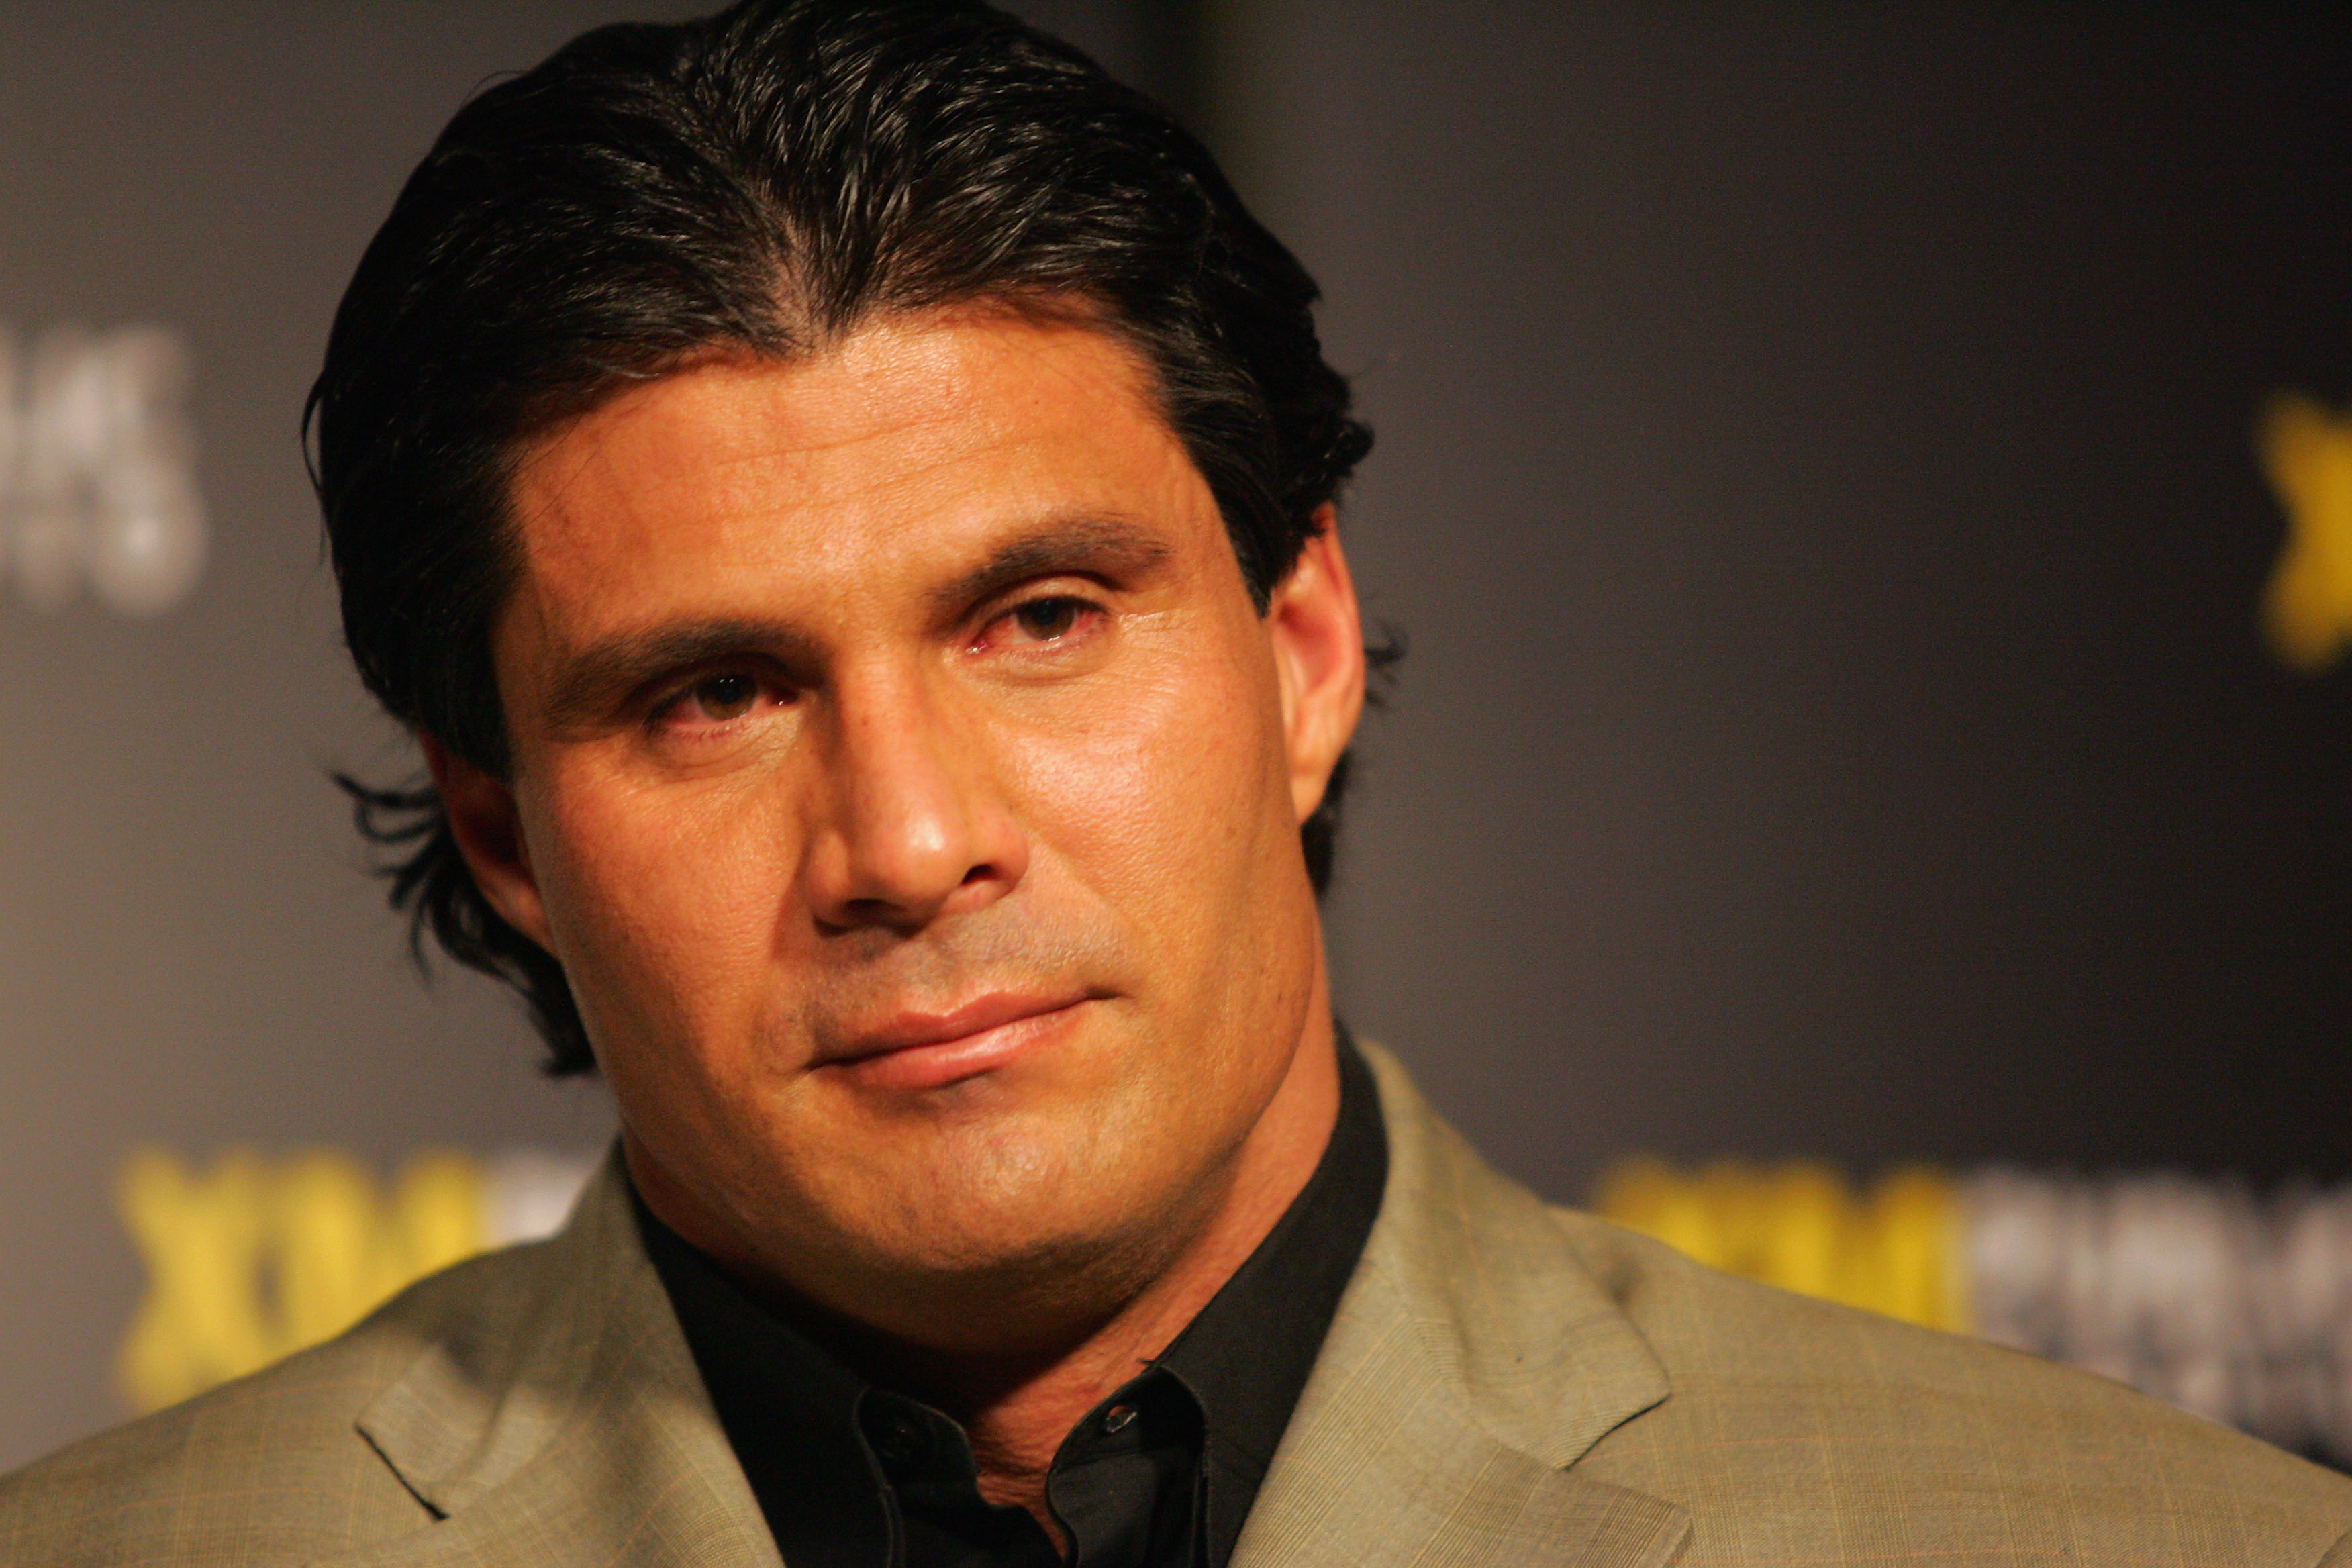 WASINGTON - MARCH 16:  Former Major League Baseball player Jose Canseco discusses steroid use during a town hall meeting and news conference March 16, 2005 at XM Satellite headquarters in Washington, DC.  (Photo By Jamie Squire/Getty Images)